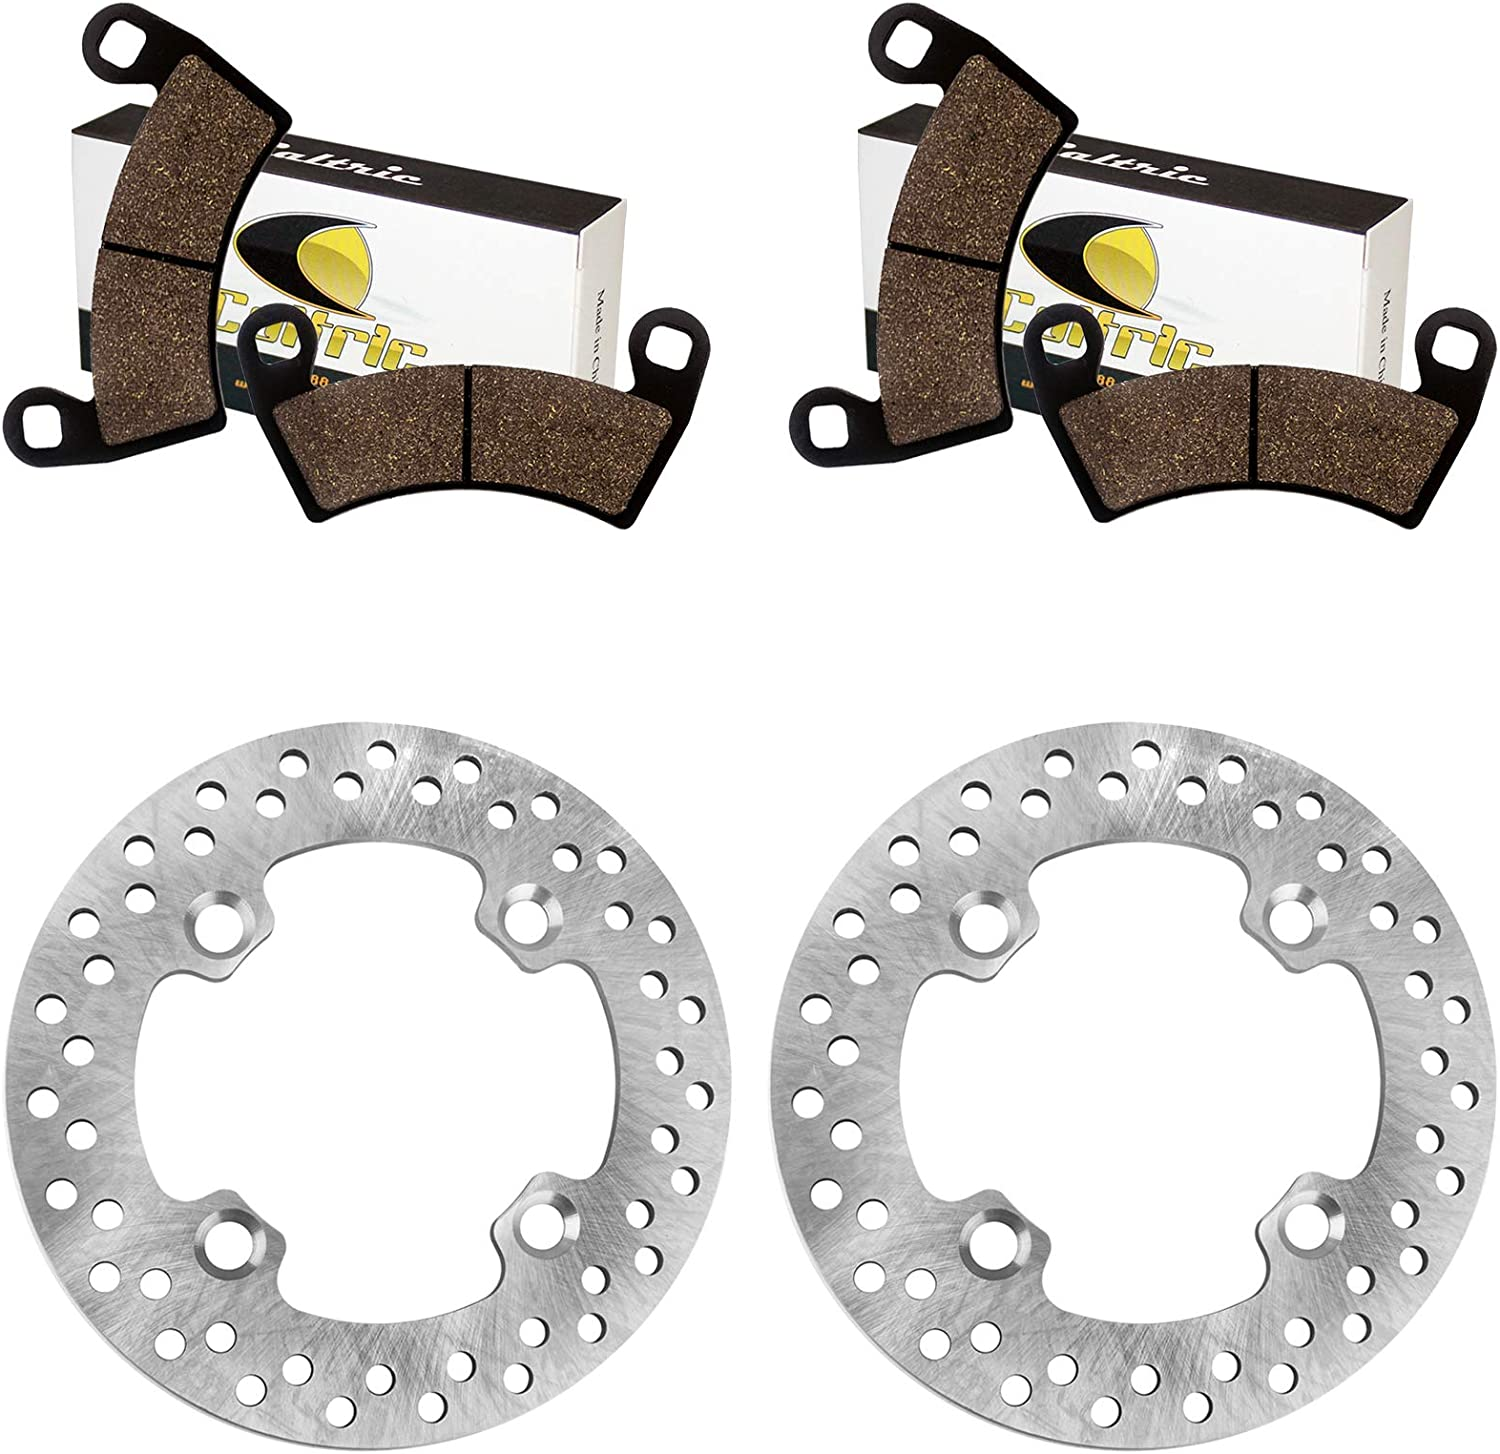 Caltric 2 Front Brake Disc Rotor specialty shop Compatible Polari with Pads And shipfree